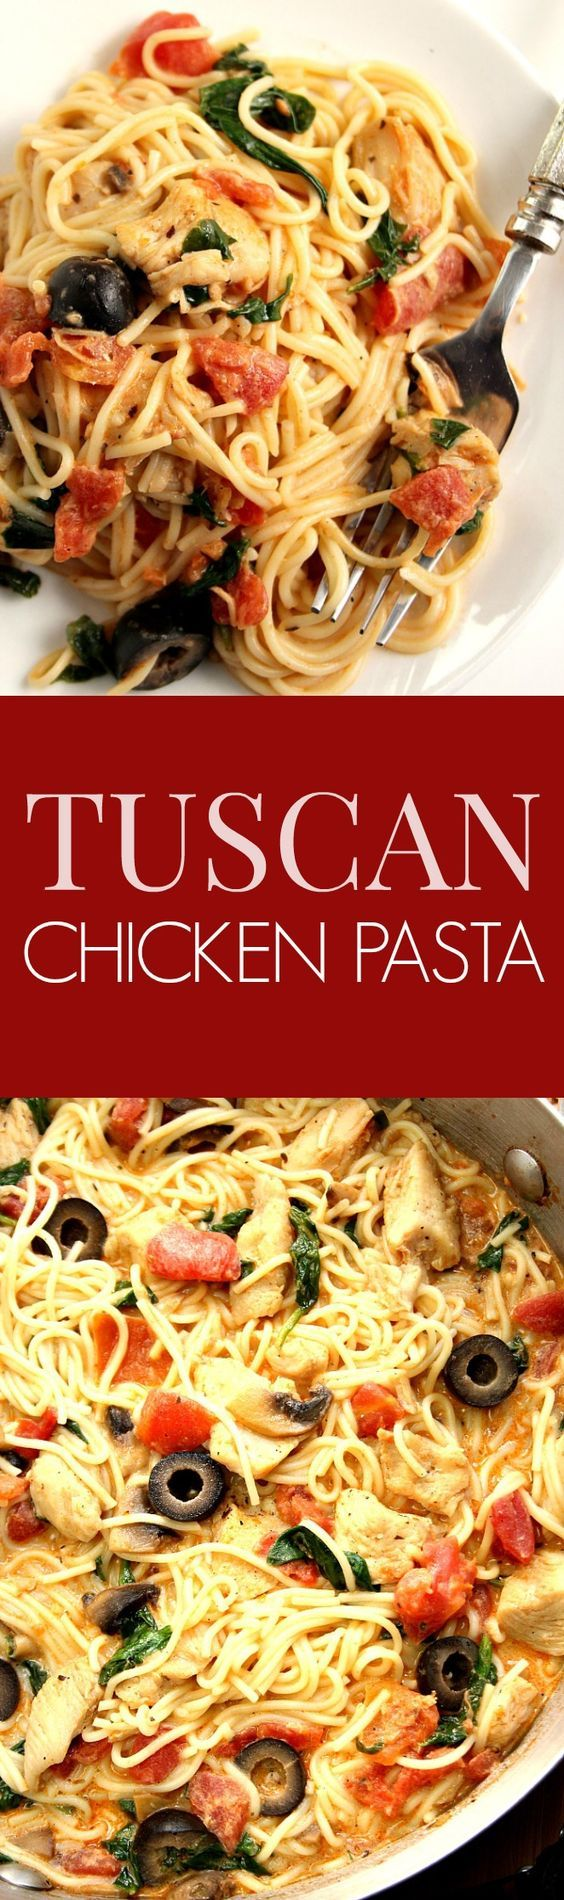 Tuscan Chicken Pasta Recipe Recipes Pasta Pinterest Chicken